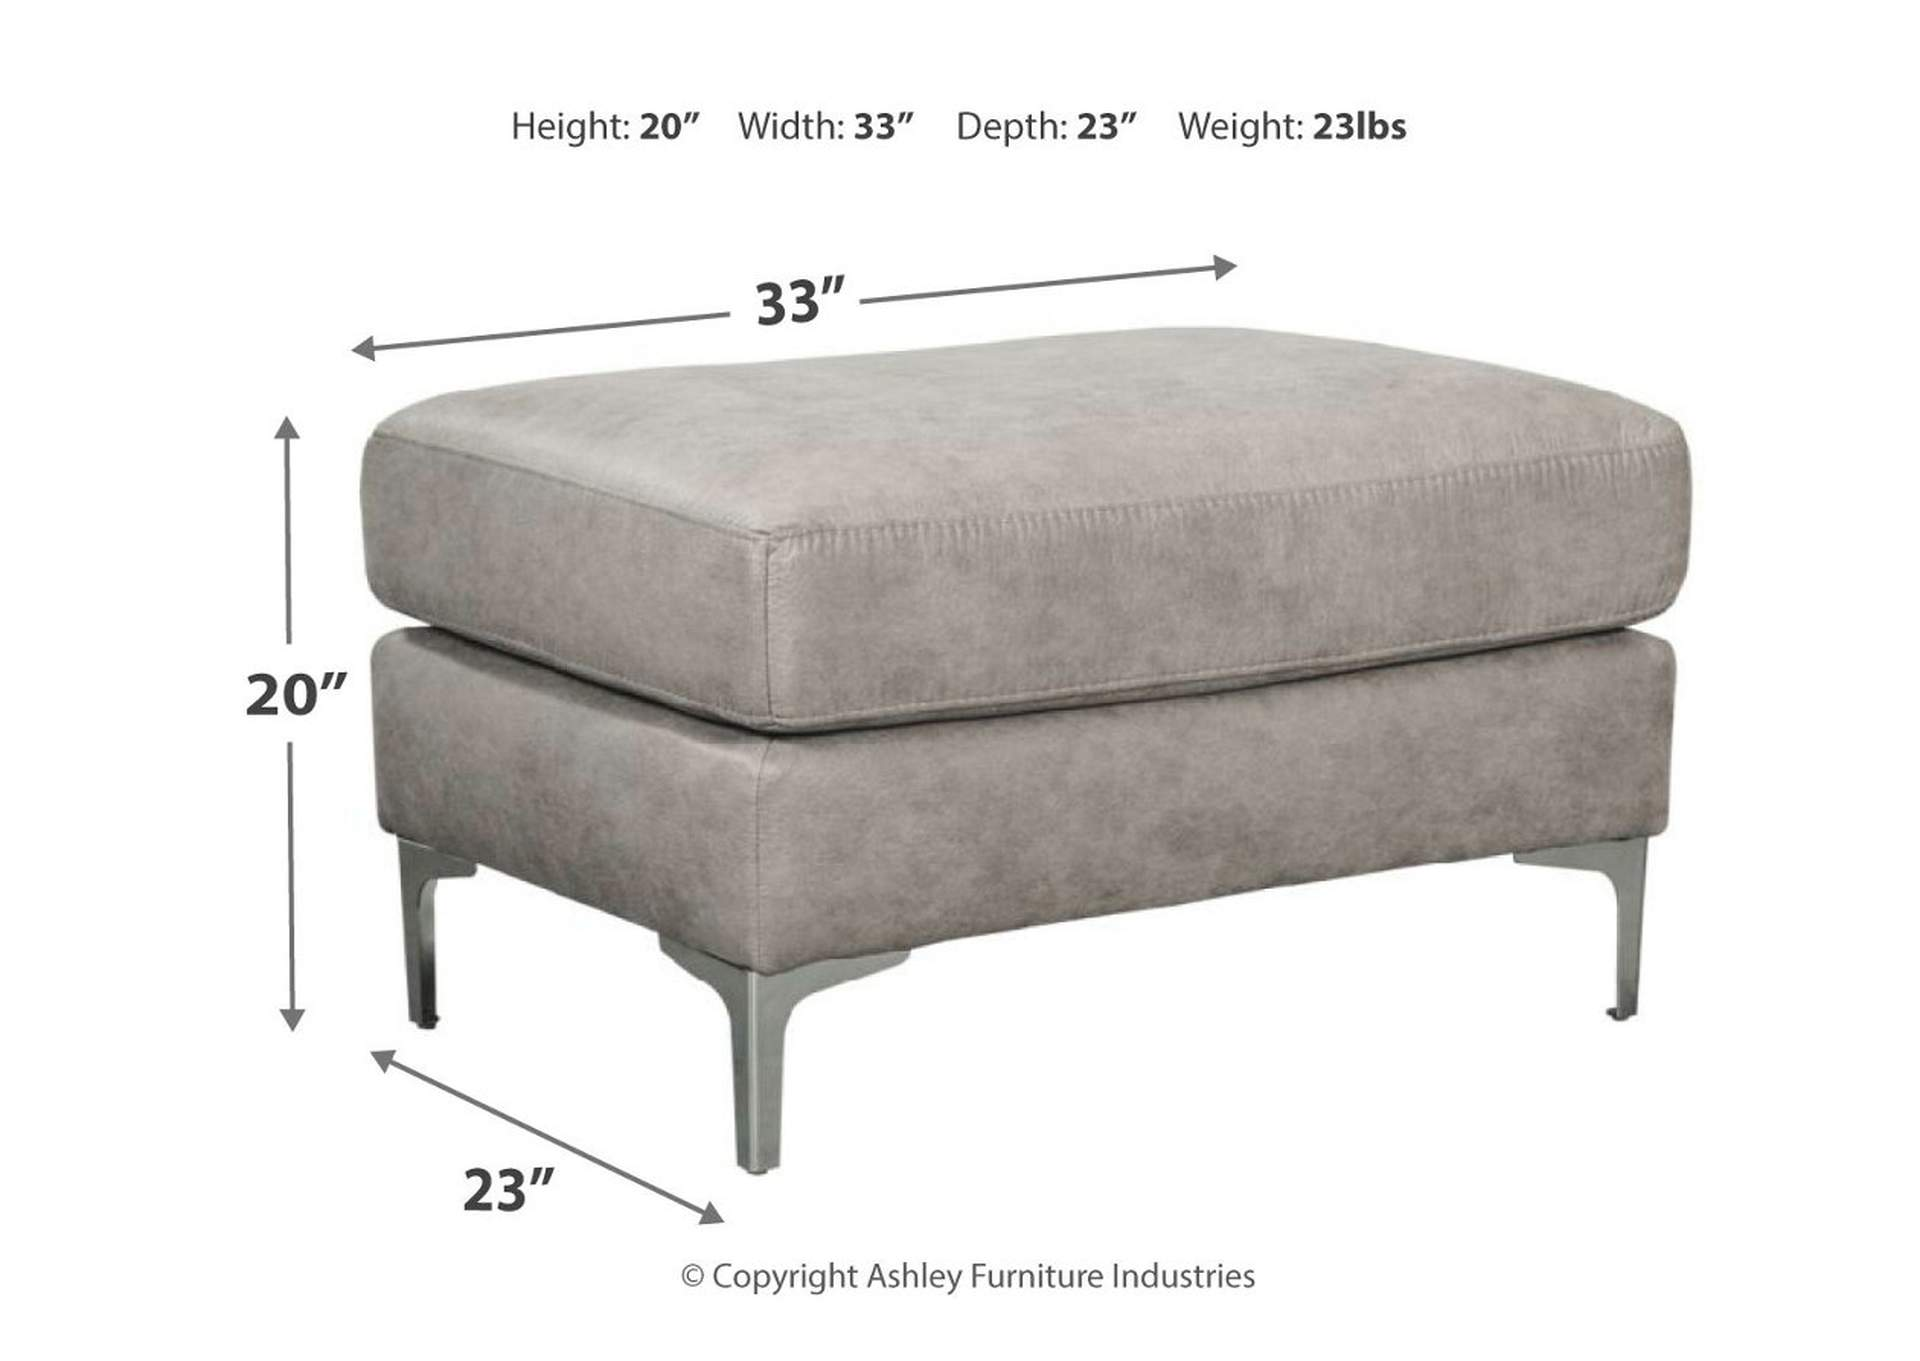 Ryler Steel Ottoman,Signature Design By Ashley